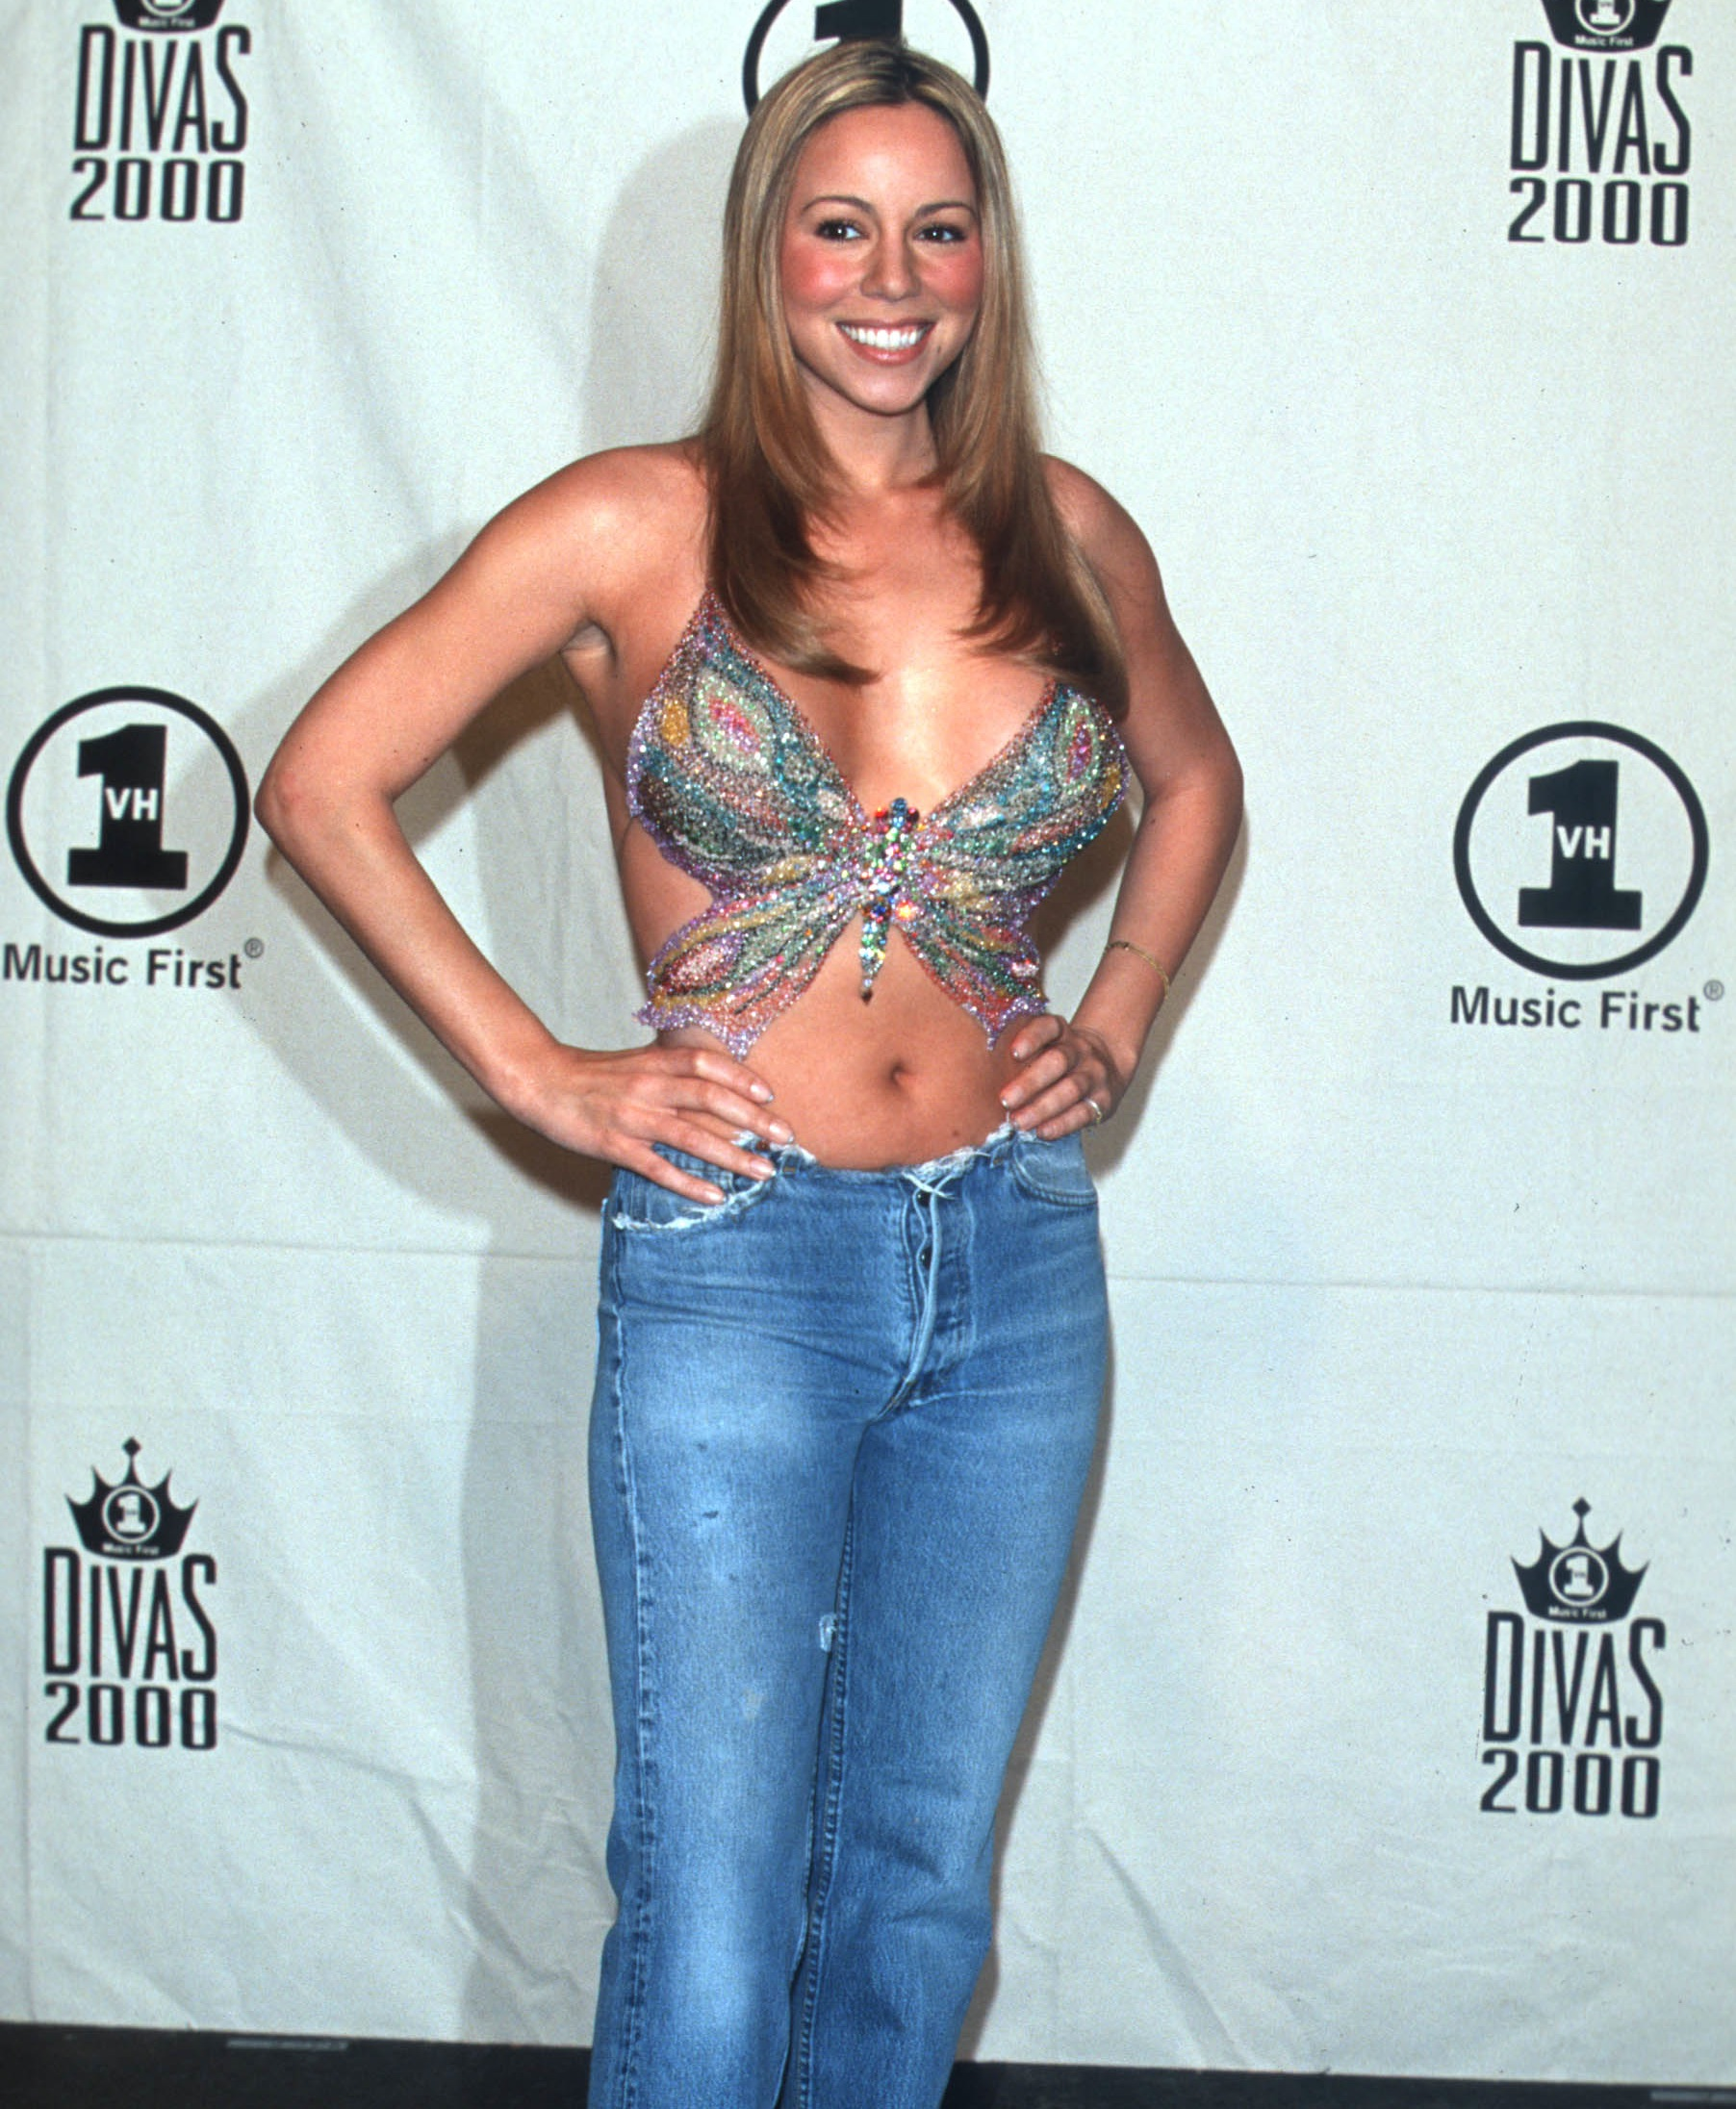 mariah-carey-2000.jpg?fit=200,1